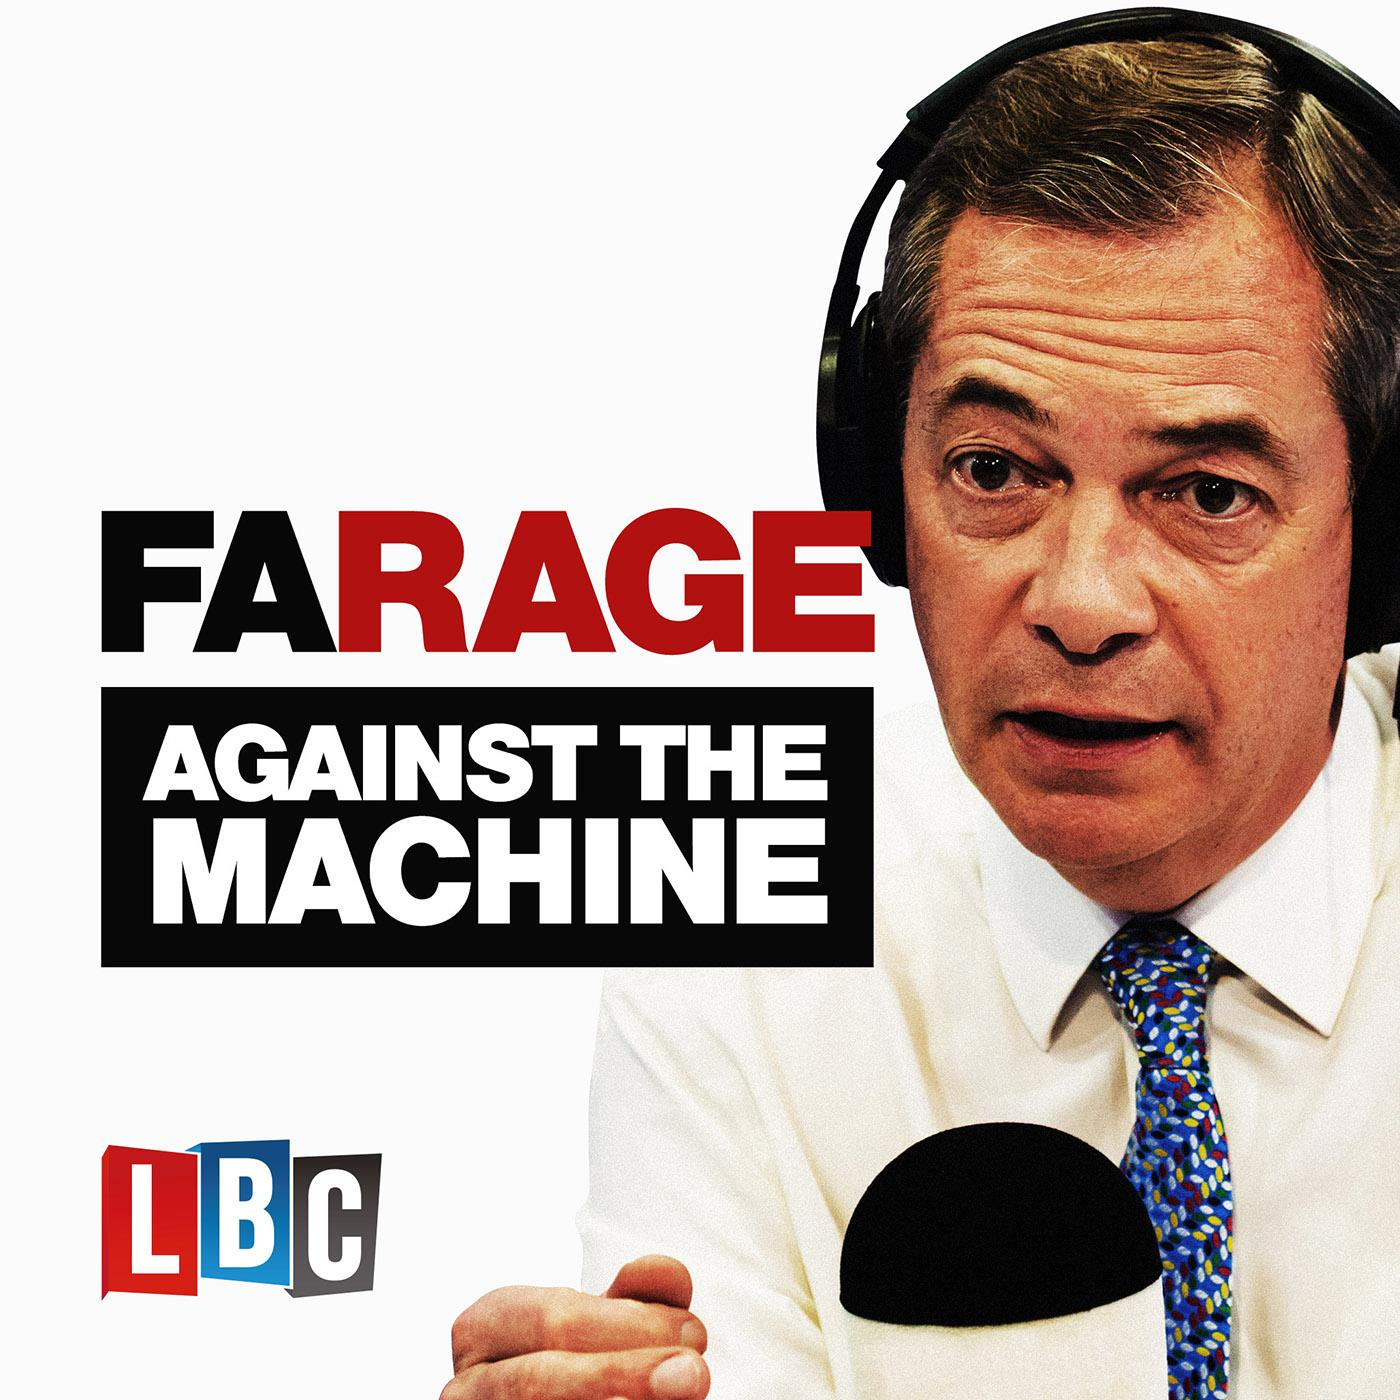 Farage Against The Machine